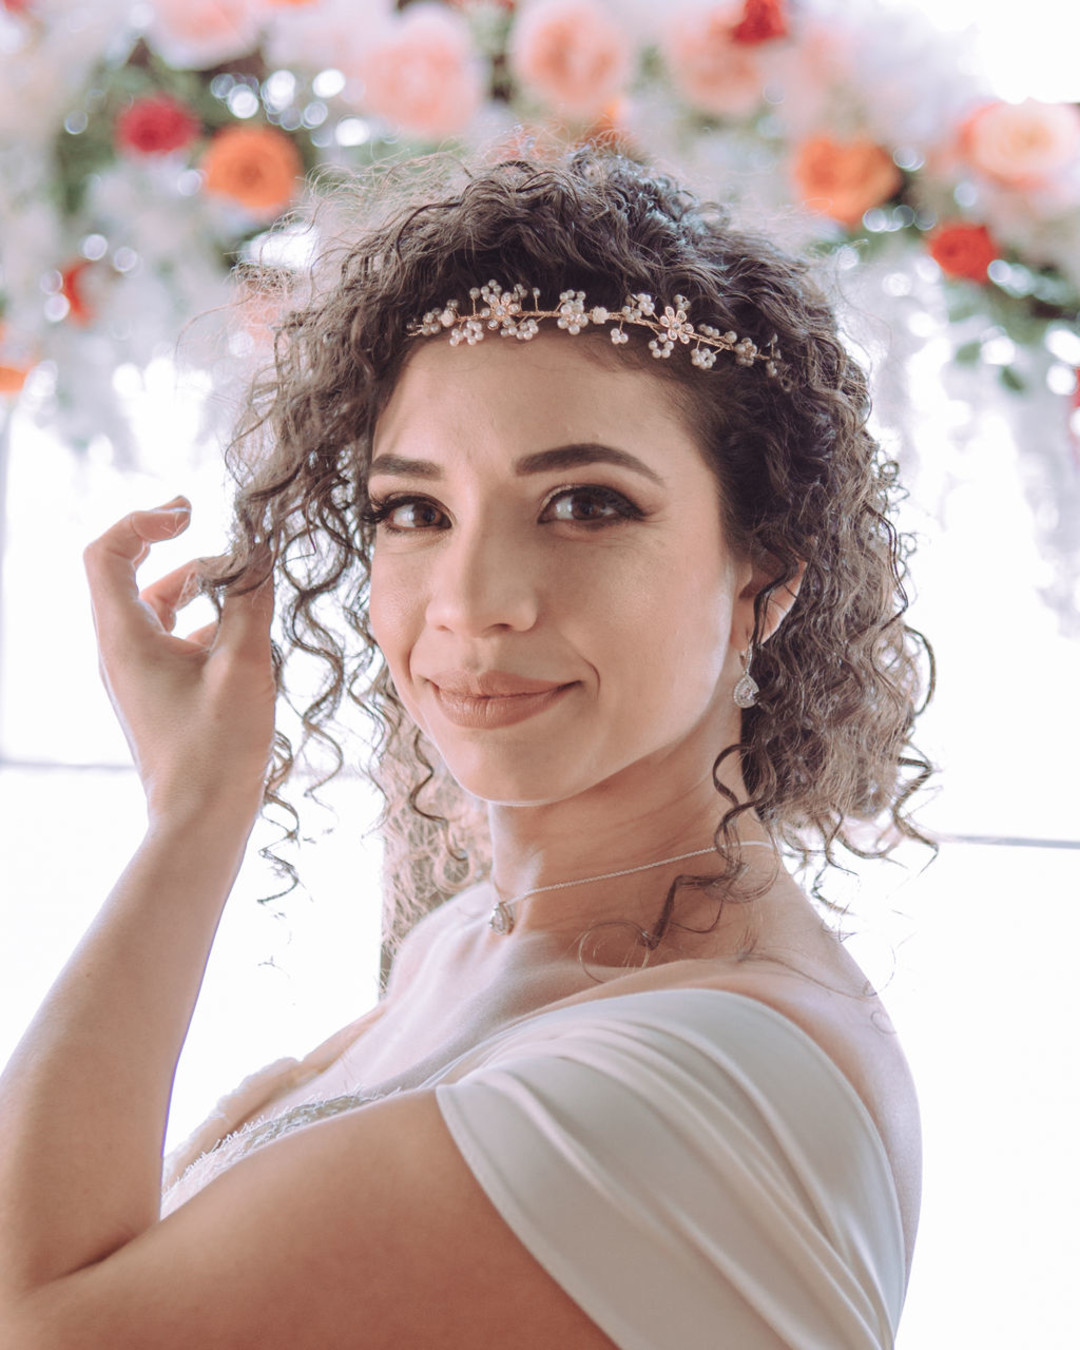 Bridal hair and makeup: Bohemian wedding inspiration captured by Truly Sublime Photography. See more boho wedding ideas on CHItheeWED.com!